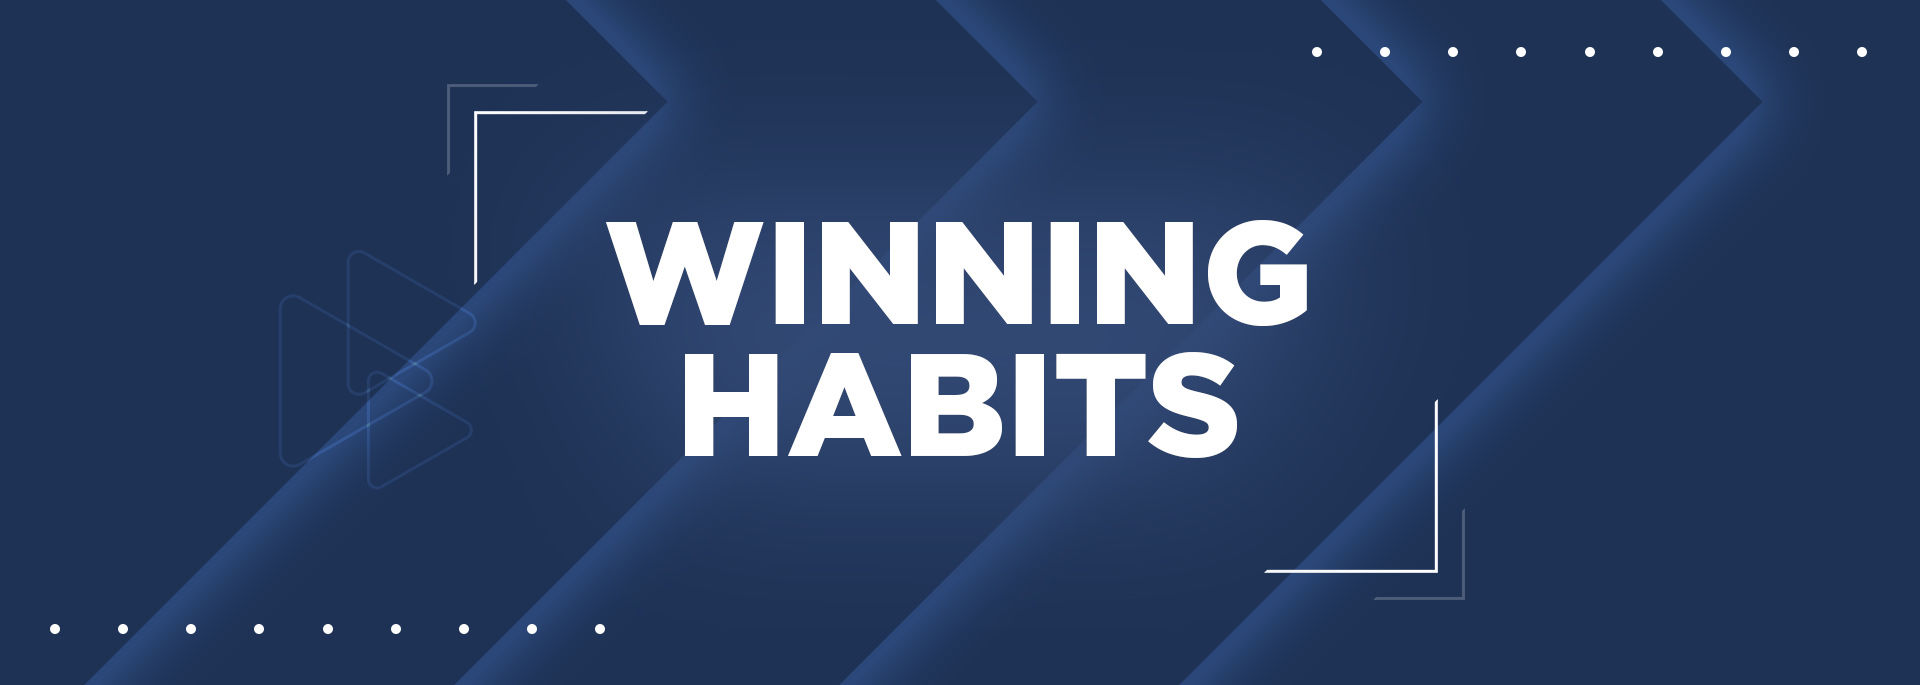 Winning Habits channel